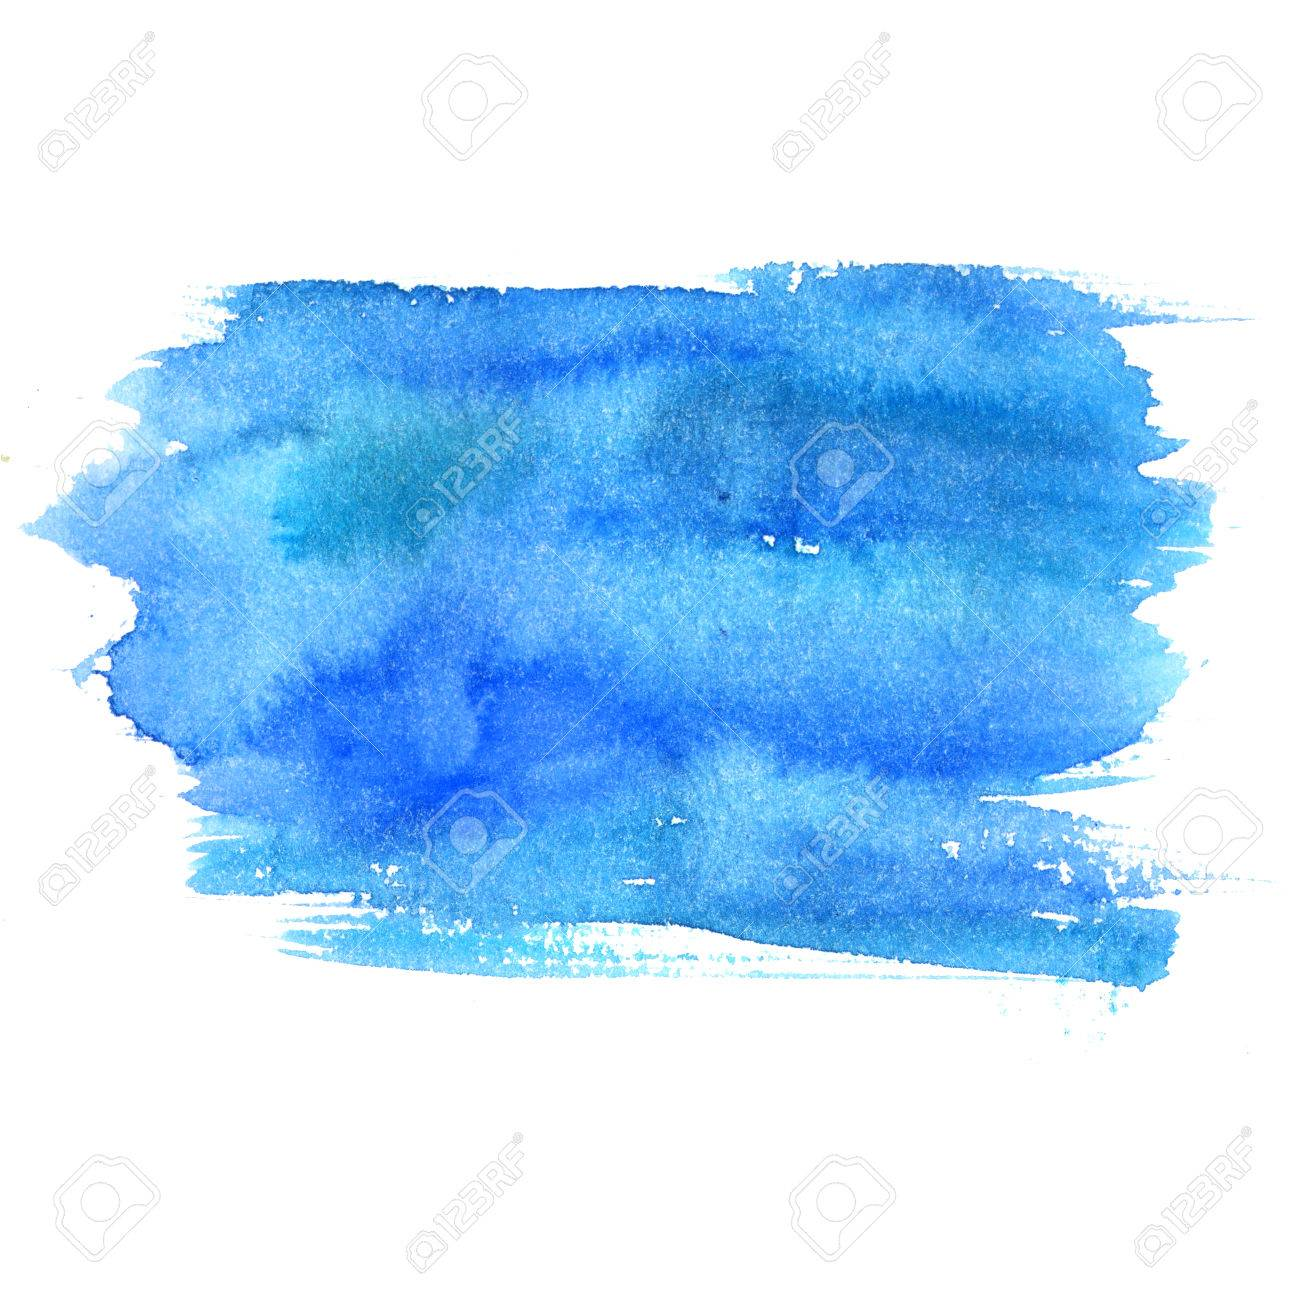 Blue watercolor stain isolated on white background. Artistic paint texture. - 60316502